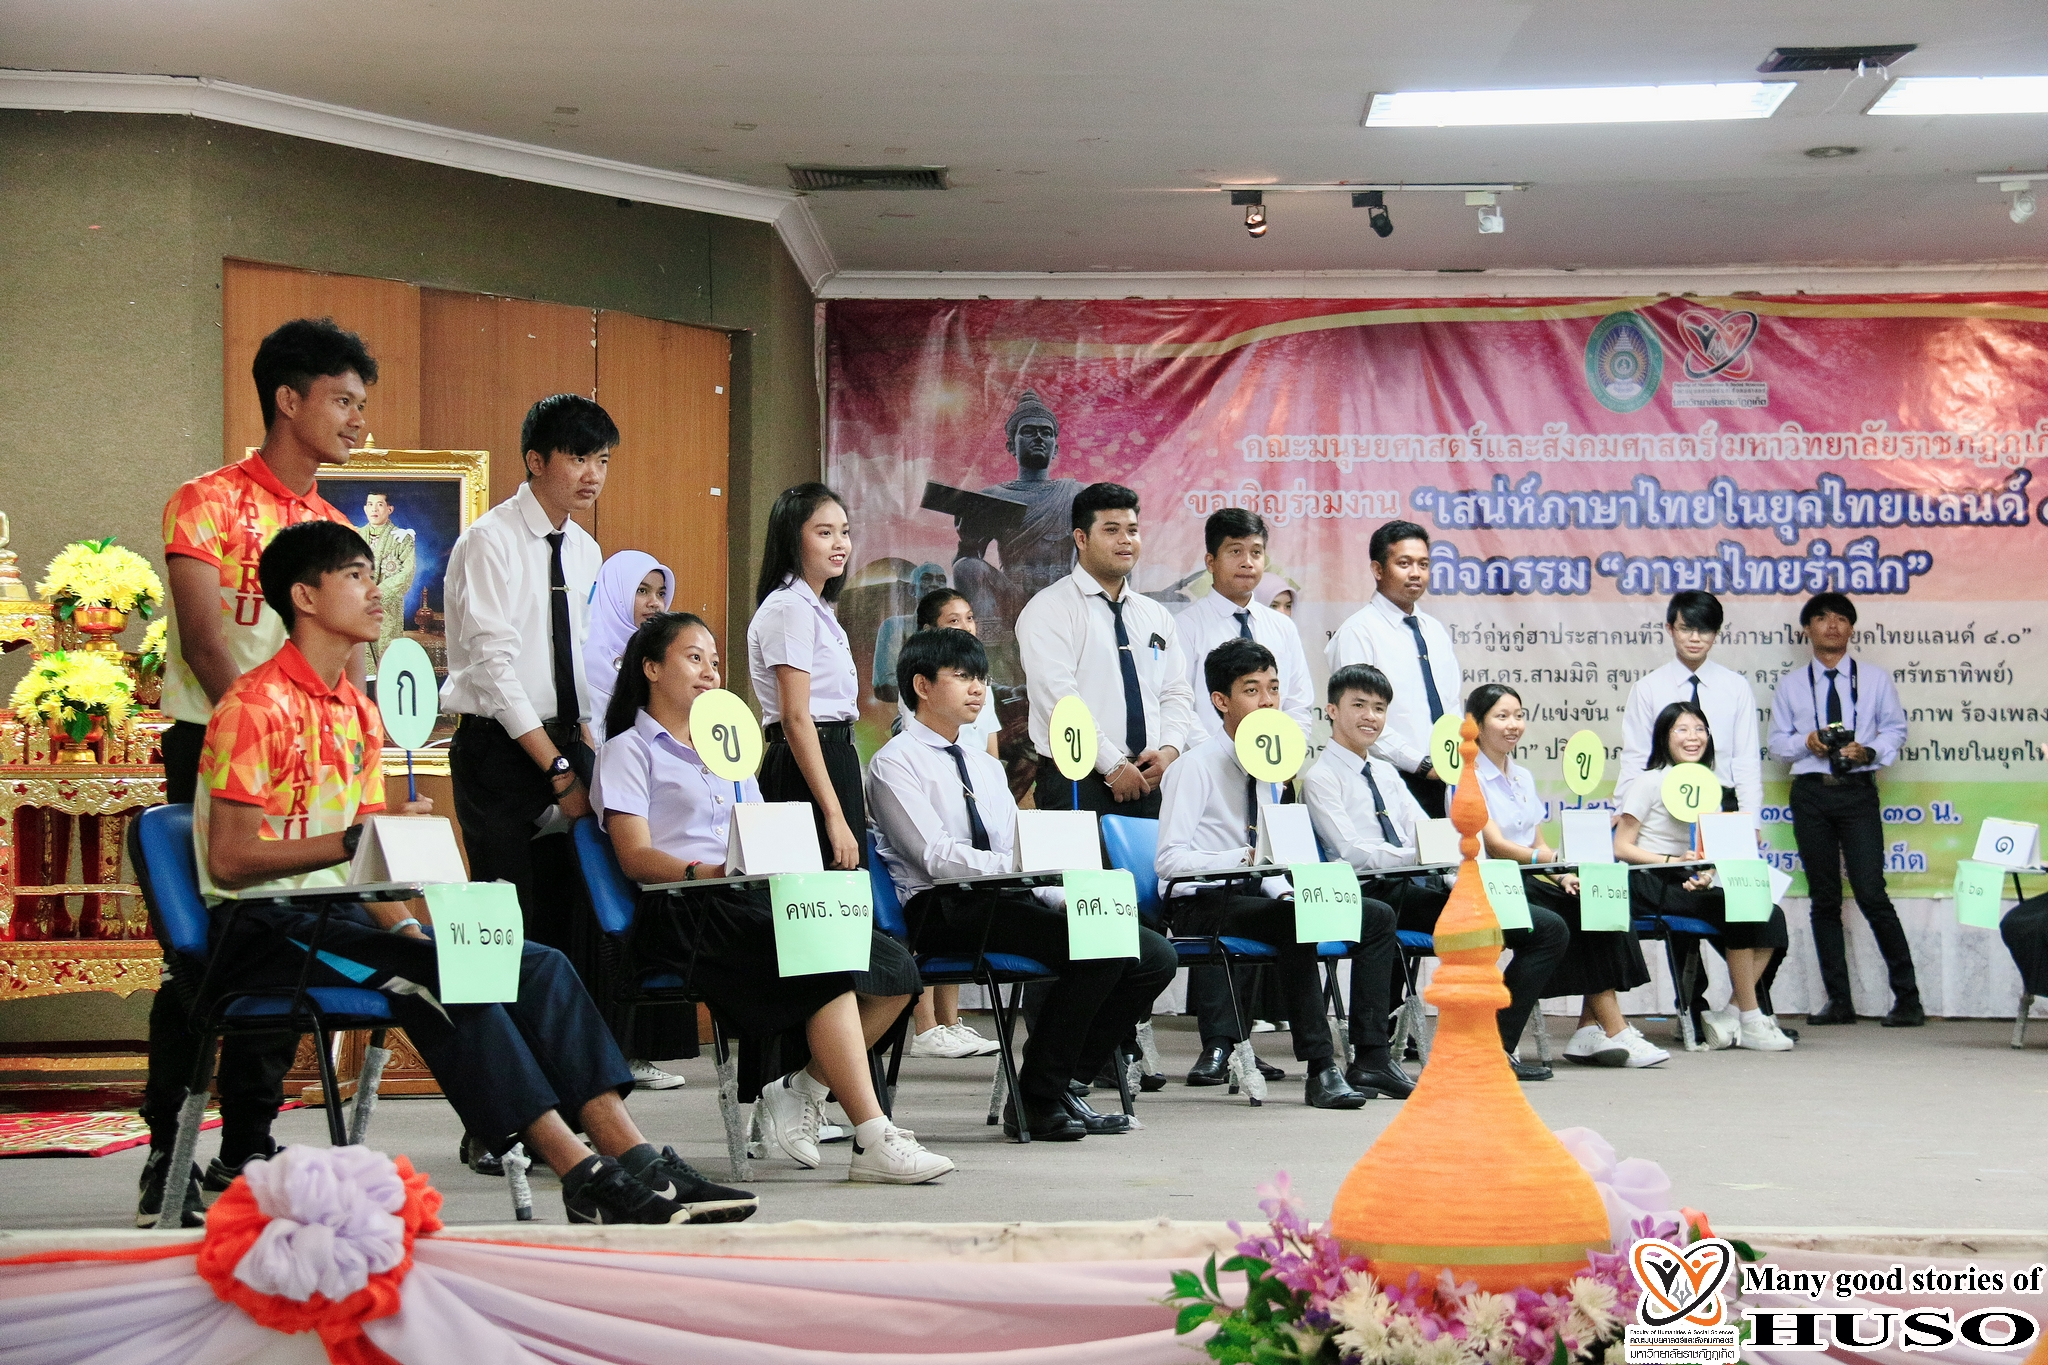 HUSO PKRU National Thai Language Day 21 Aug 2018 23